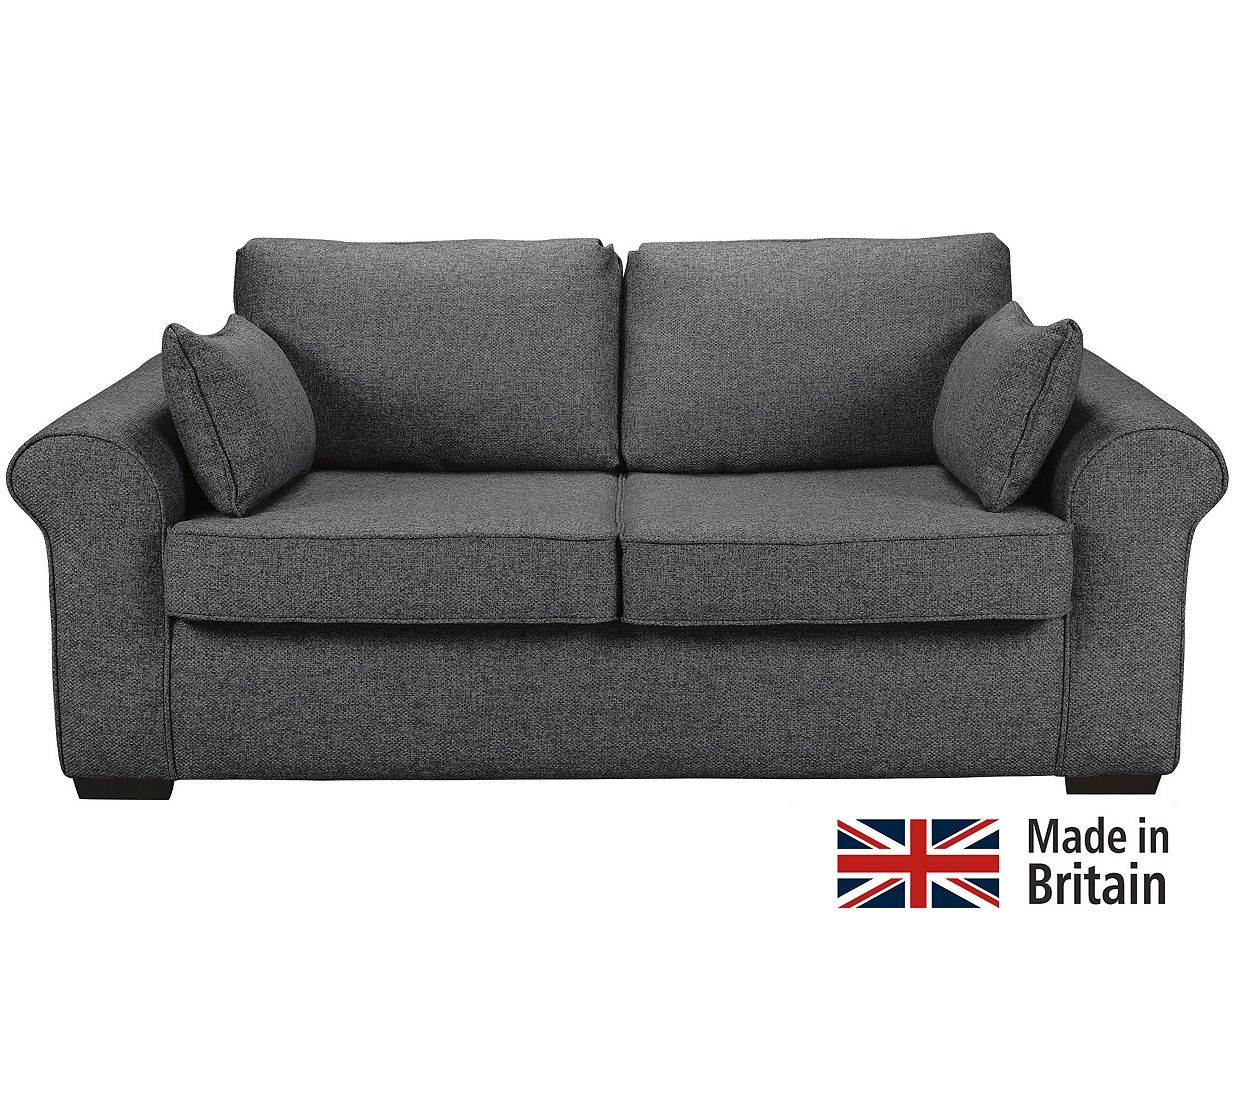 http//www.argos.co.uk/product/1703980 Fabric sofa bed